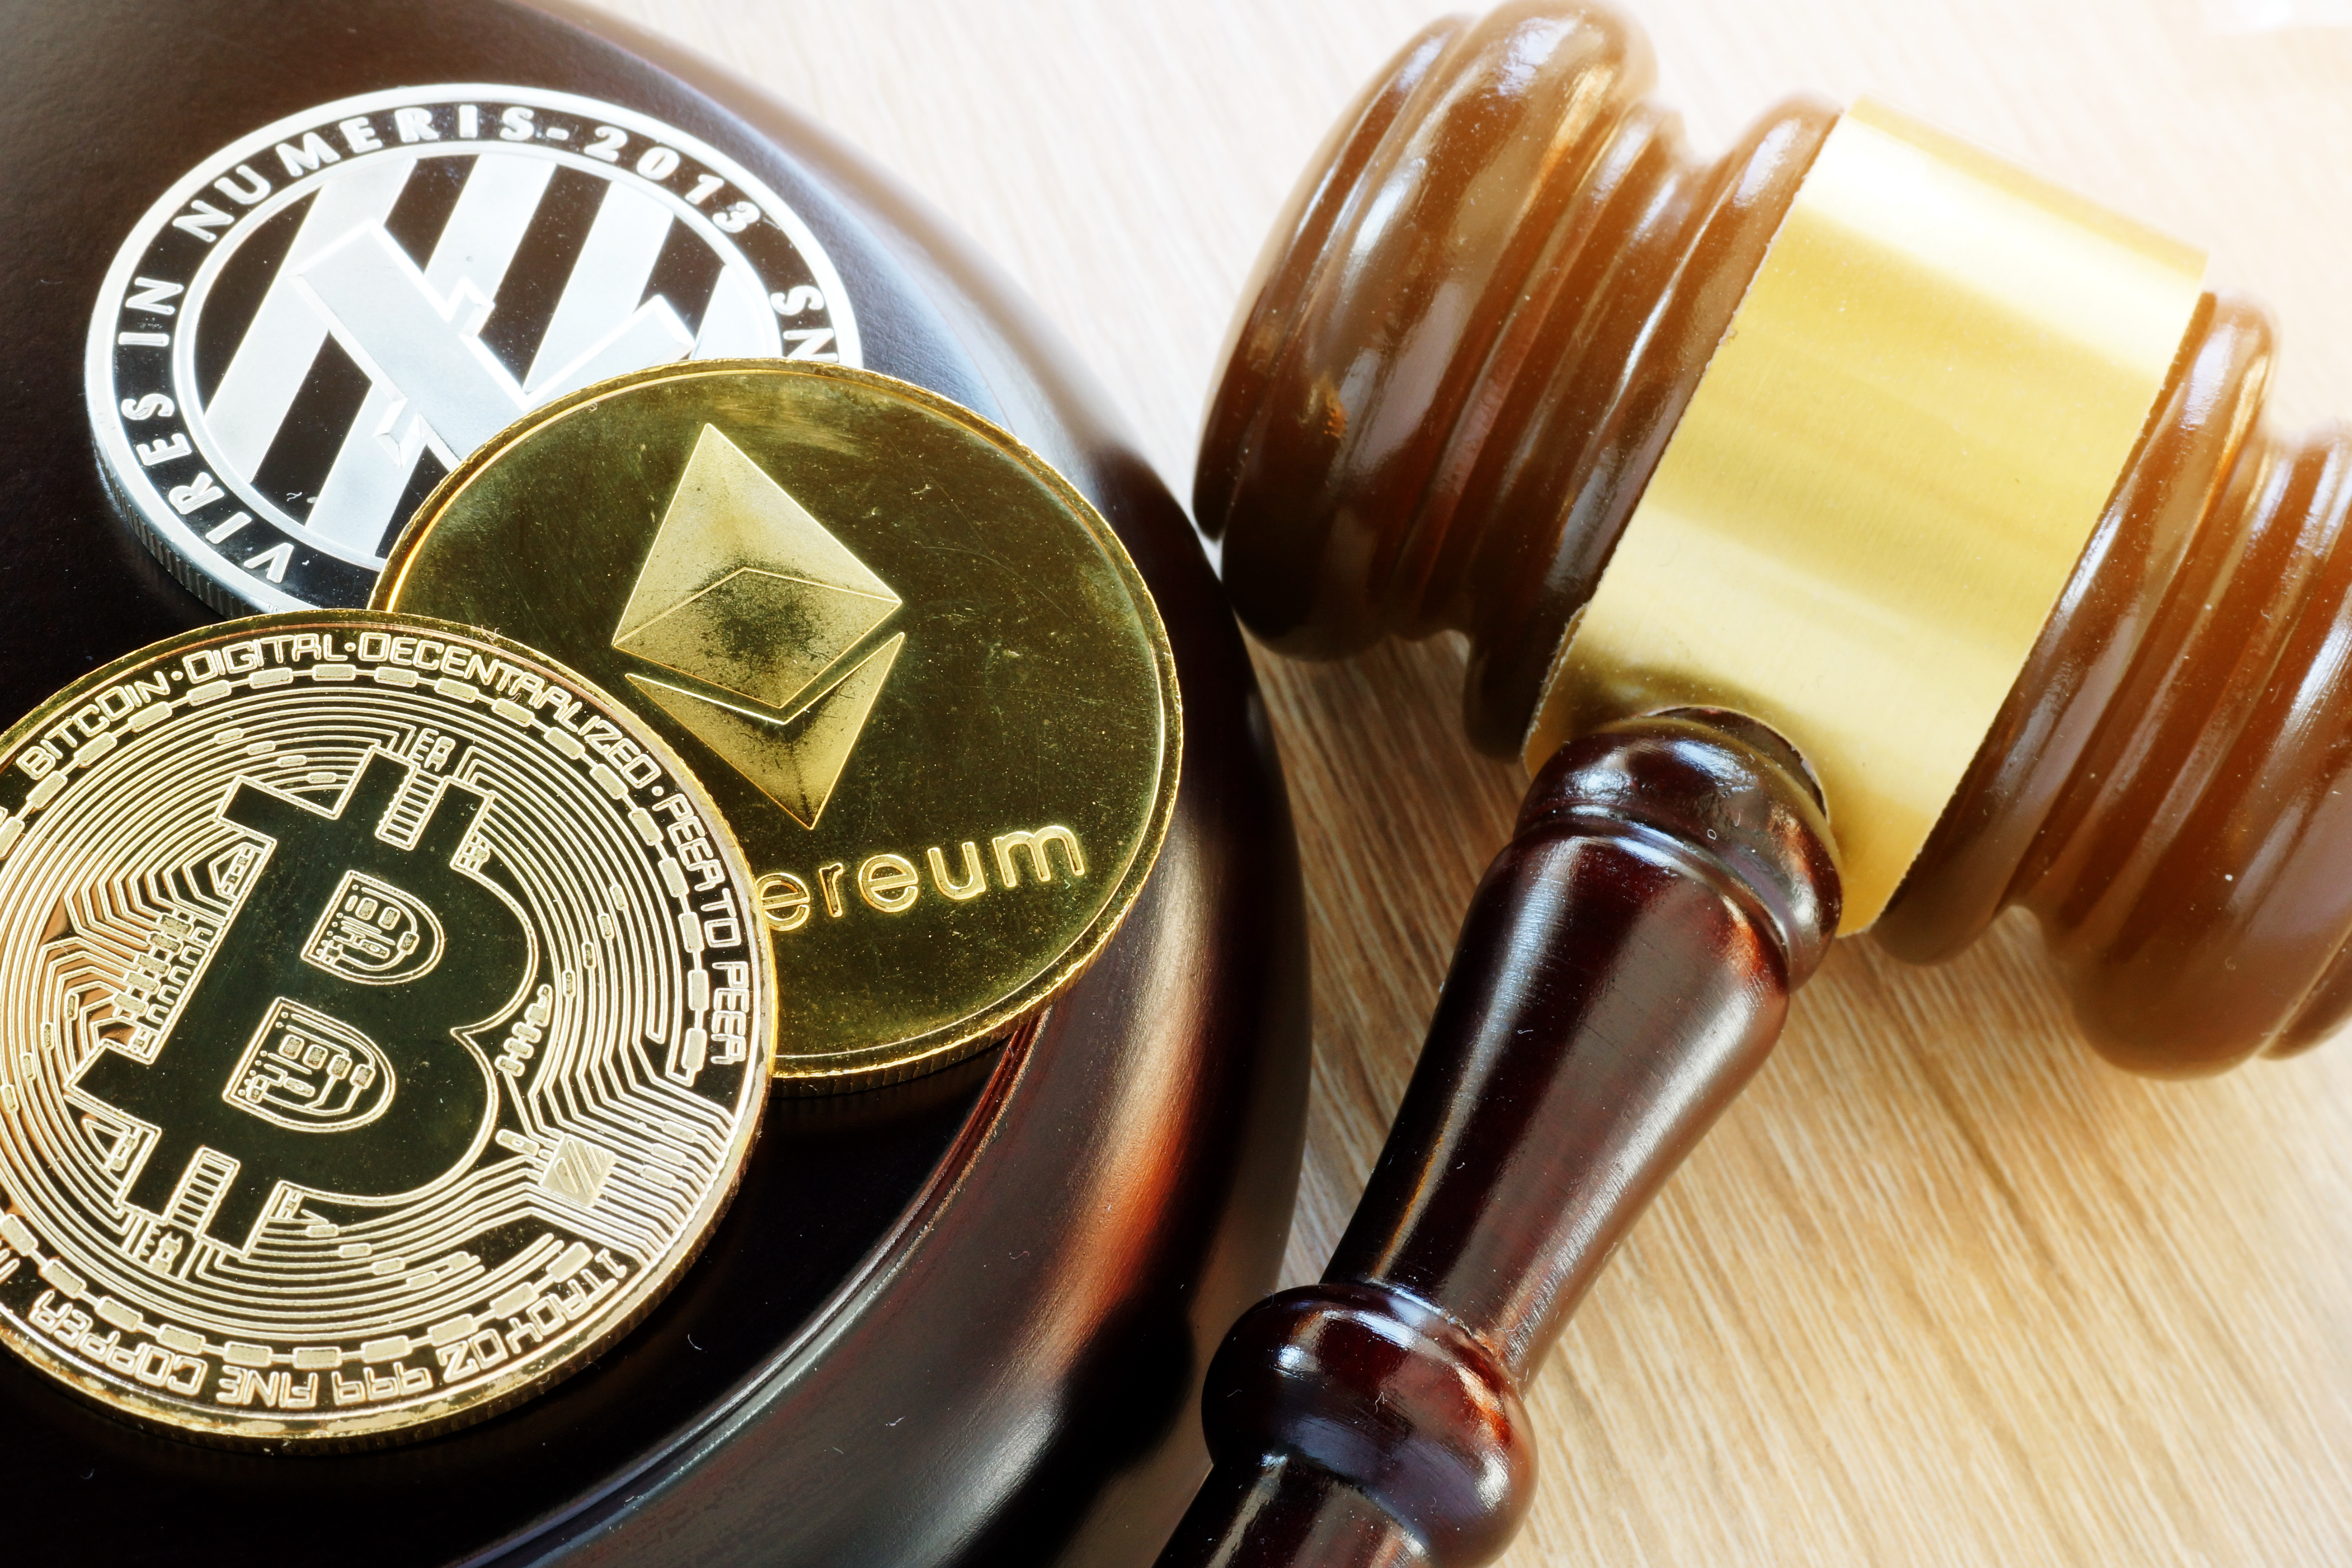 Gavel and cryptocurrency tokens; government regulation.